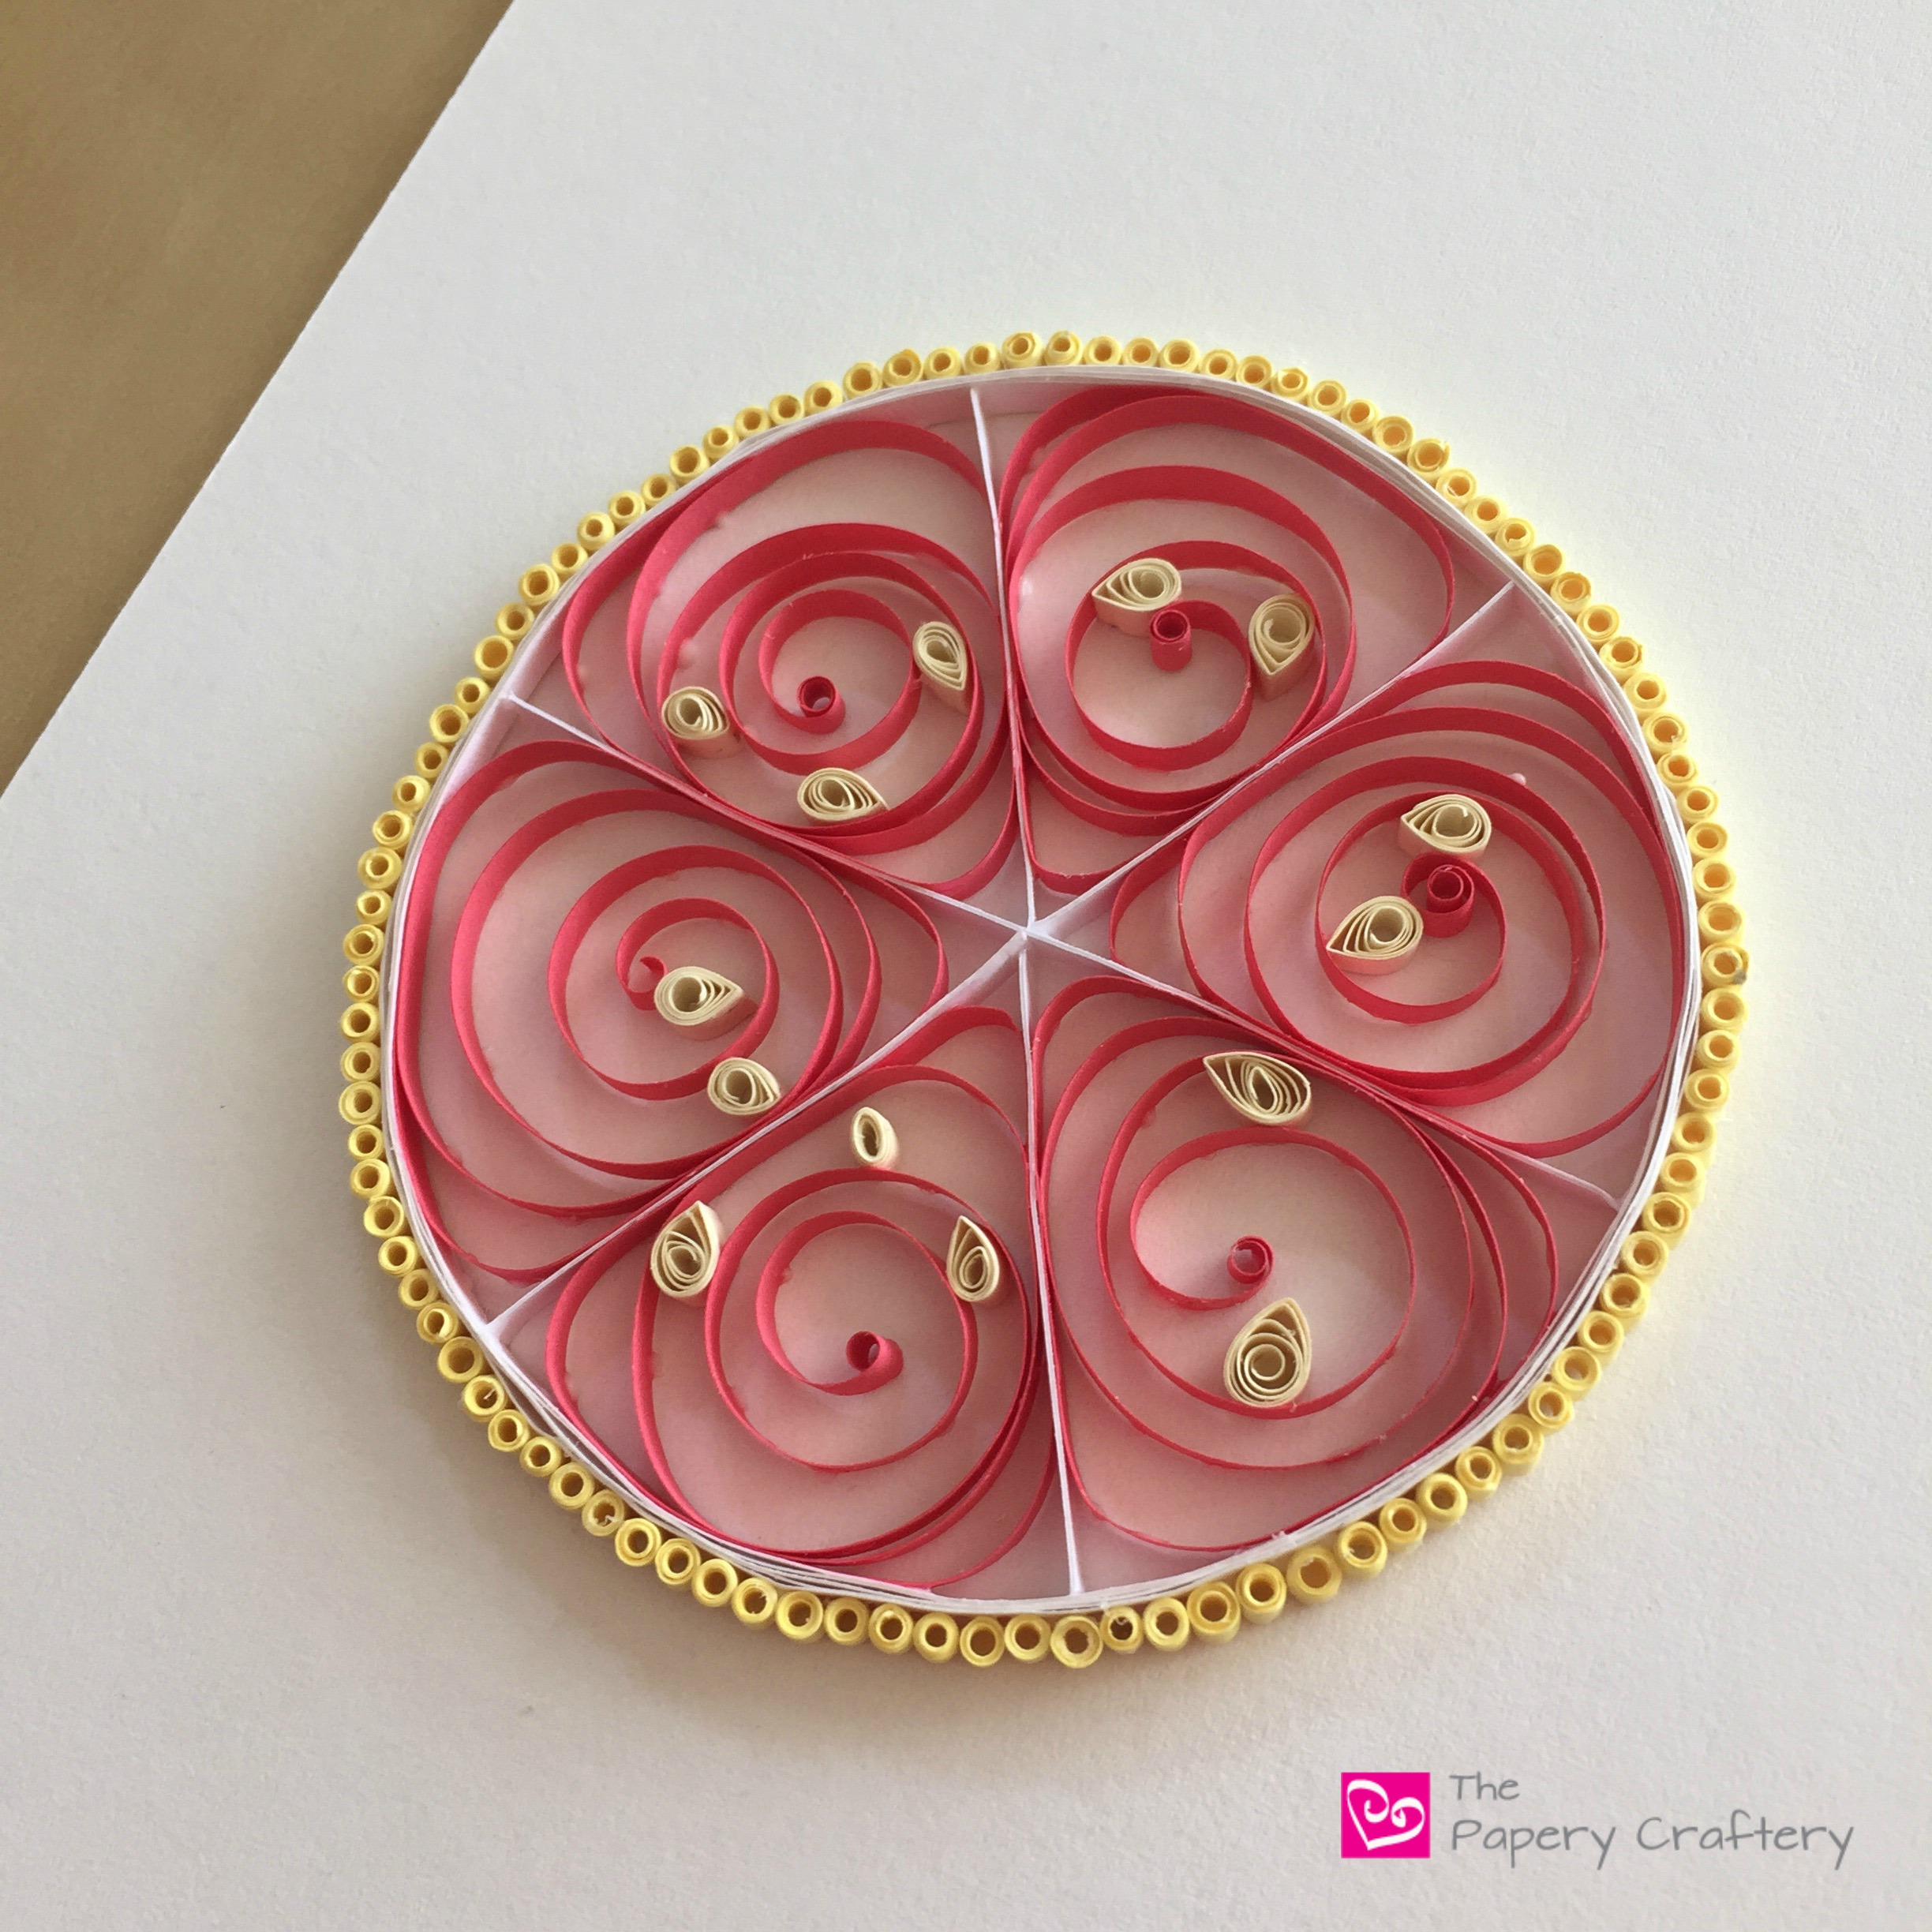 Handmade quilled paper grapefruit citrus fruit art